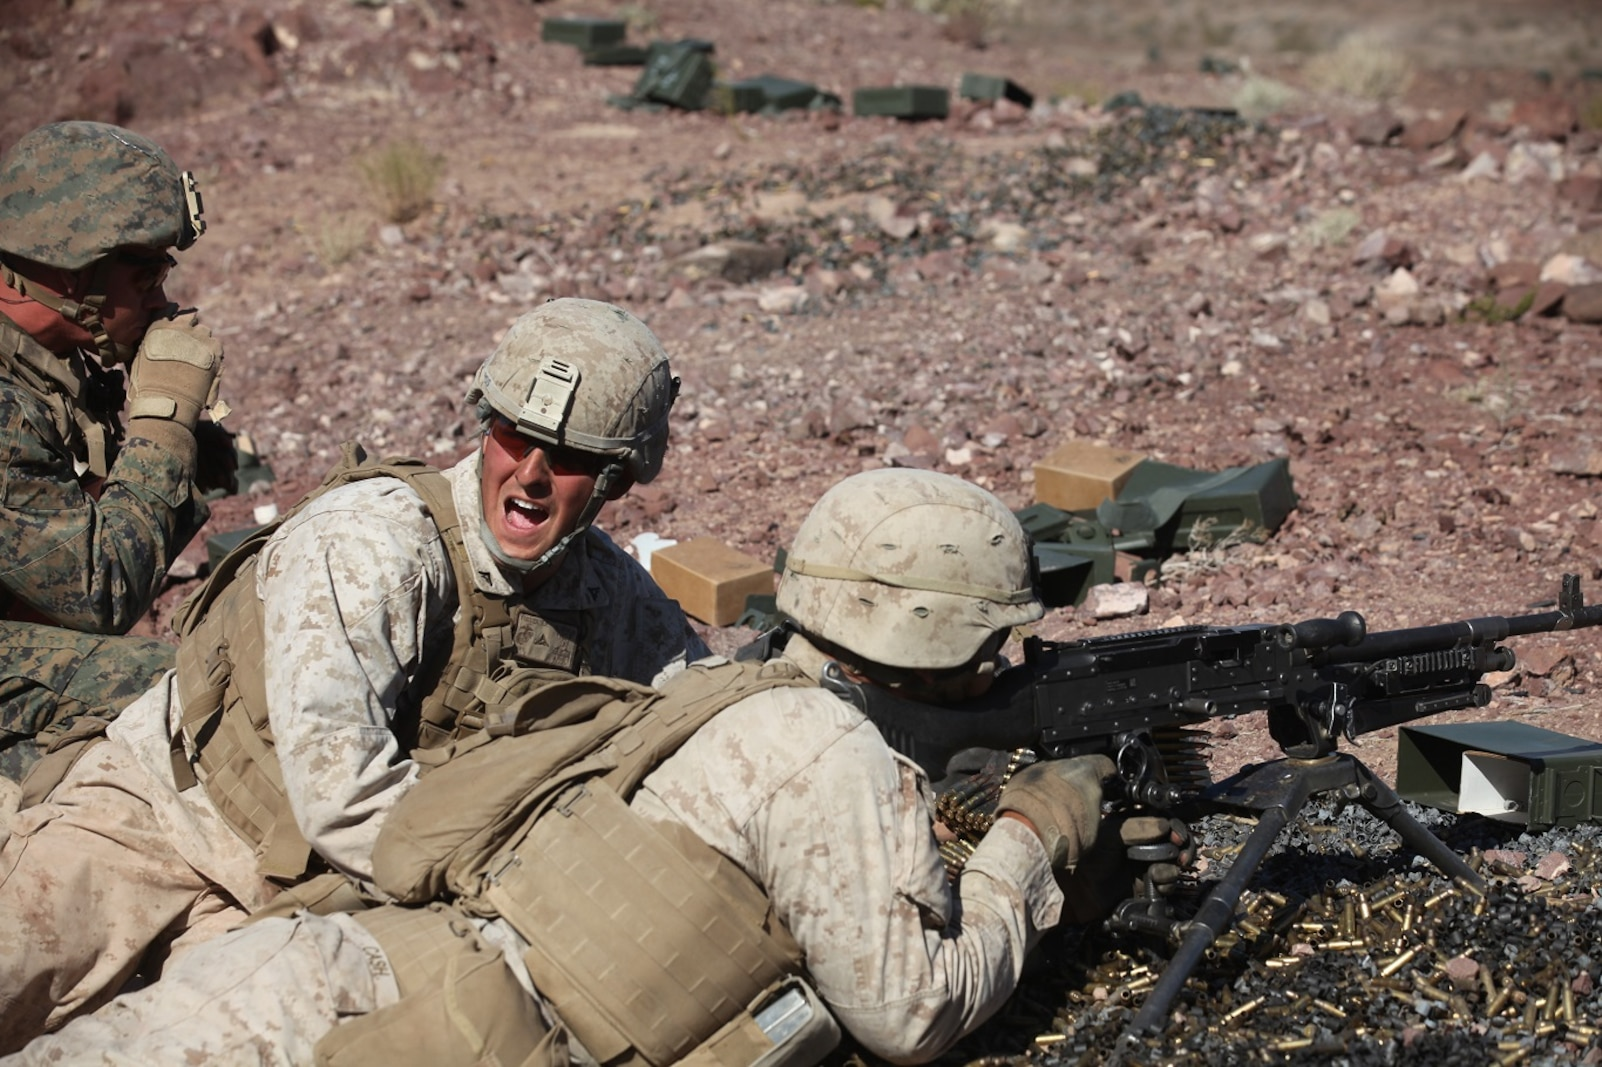 Lance Cpl. Rory Fuller, a machine gunner with 1st Battalion, 7th Marine Regiment, 1st Marine Division, I Marine Expeditionary Force, calls for his runner to bring additional ammunition during 1/7's Marine Corps Combat Readiness Evaluation aboard Marine Corps Air Ground Combat Center Twentynine Palms, Calif., June 9, 2015.  Marines from 1/7 and 2nd battalion, 7th Marine Regiment are currently in preparation for deployment with the Special Purpose Marine Air Ground Task Force (SPMAGTF) scheduled to depart in support of Operation Inherent Resolve later this year.